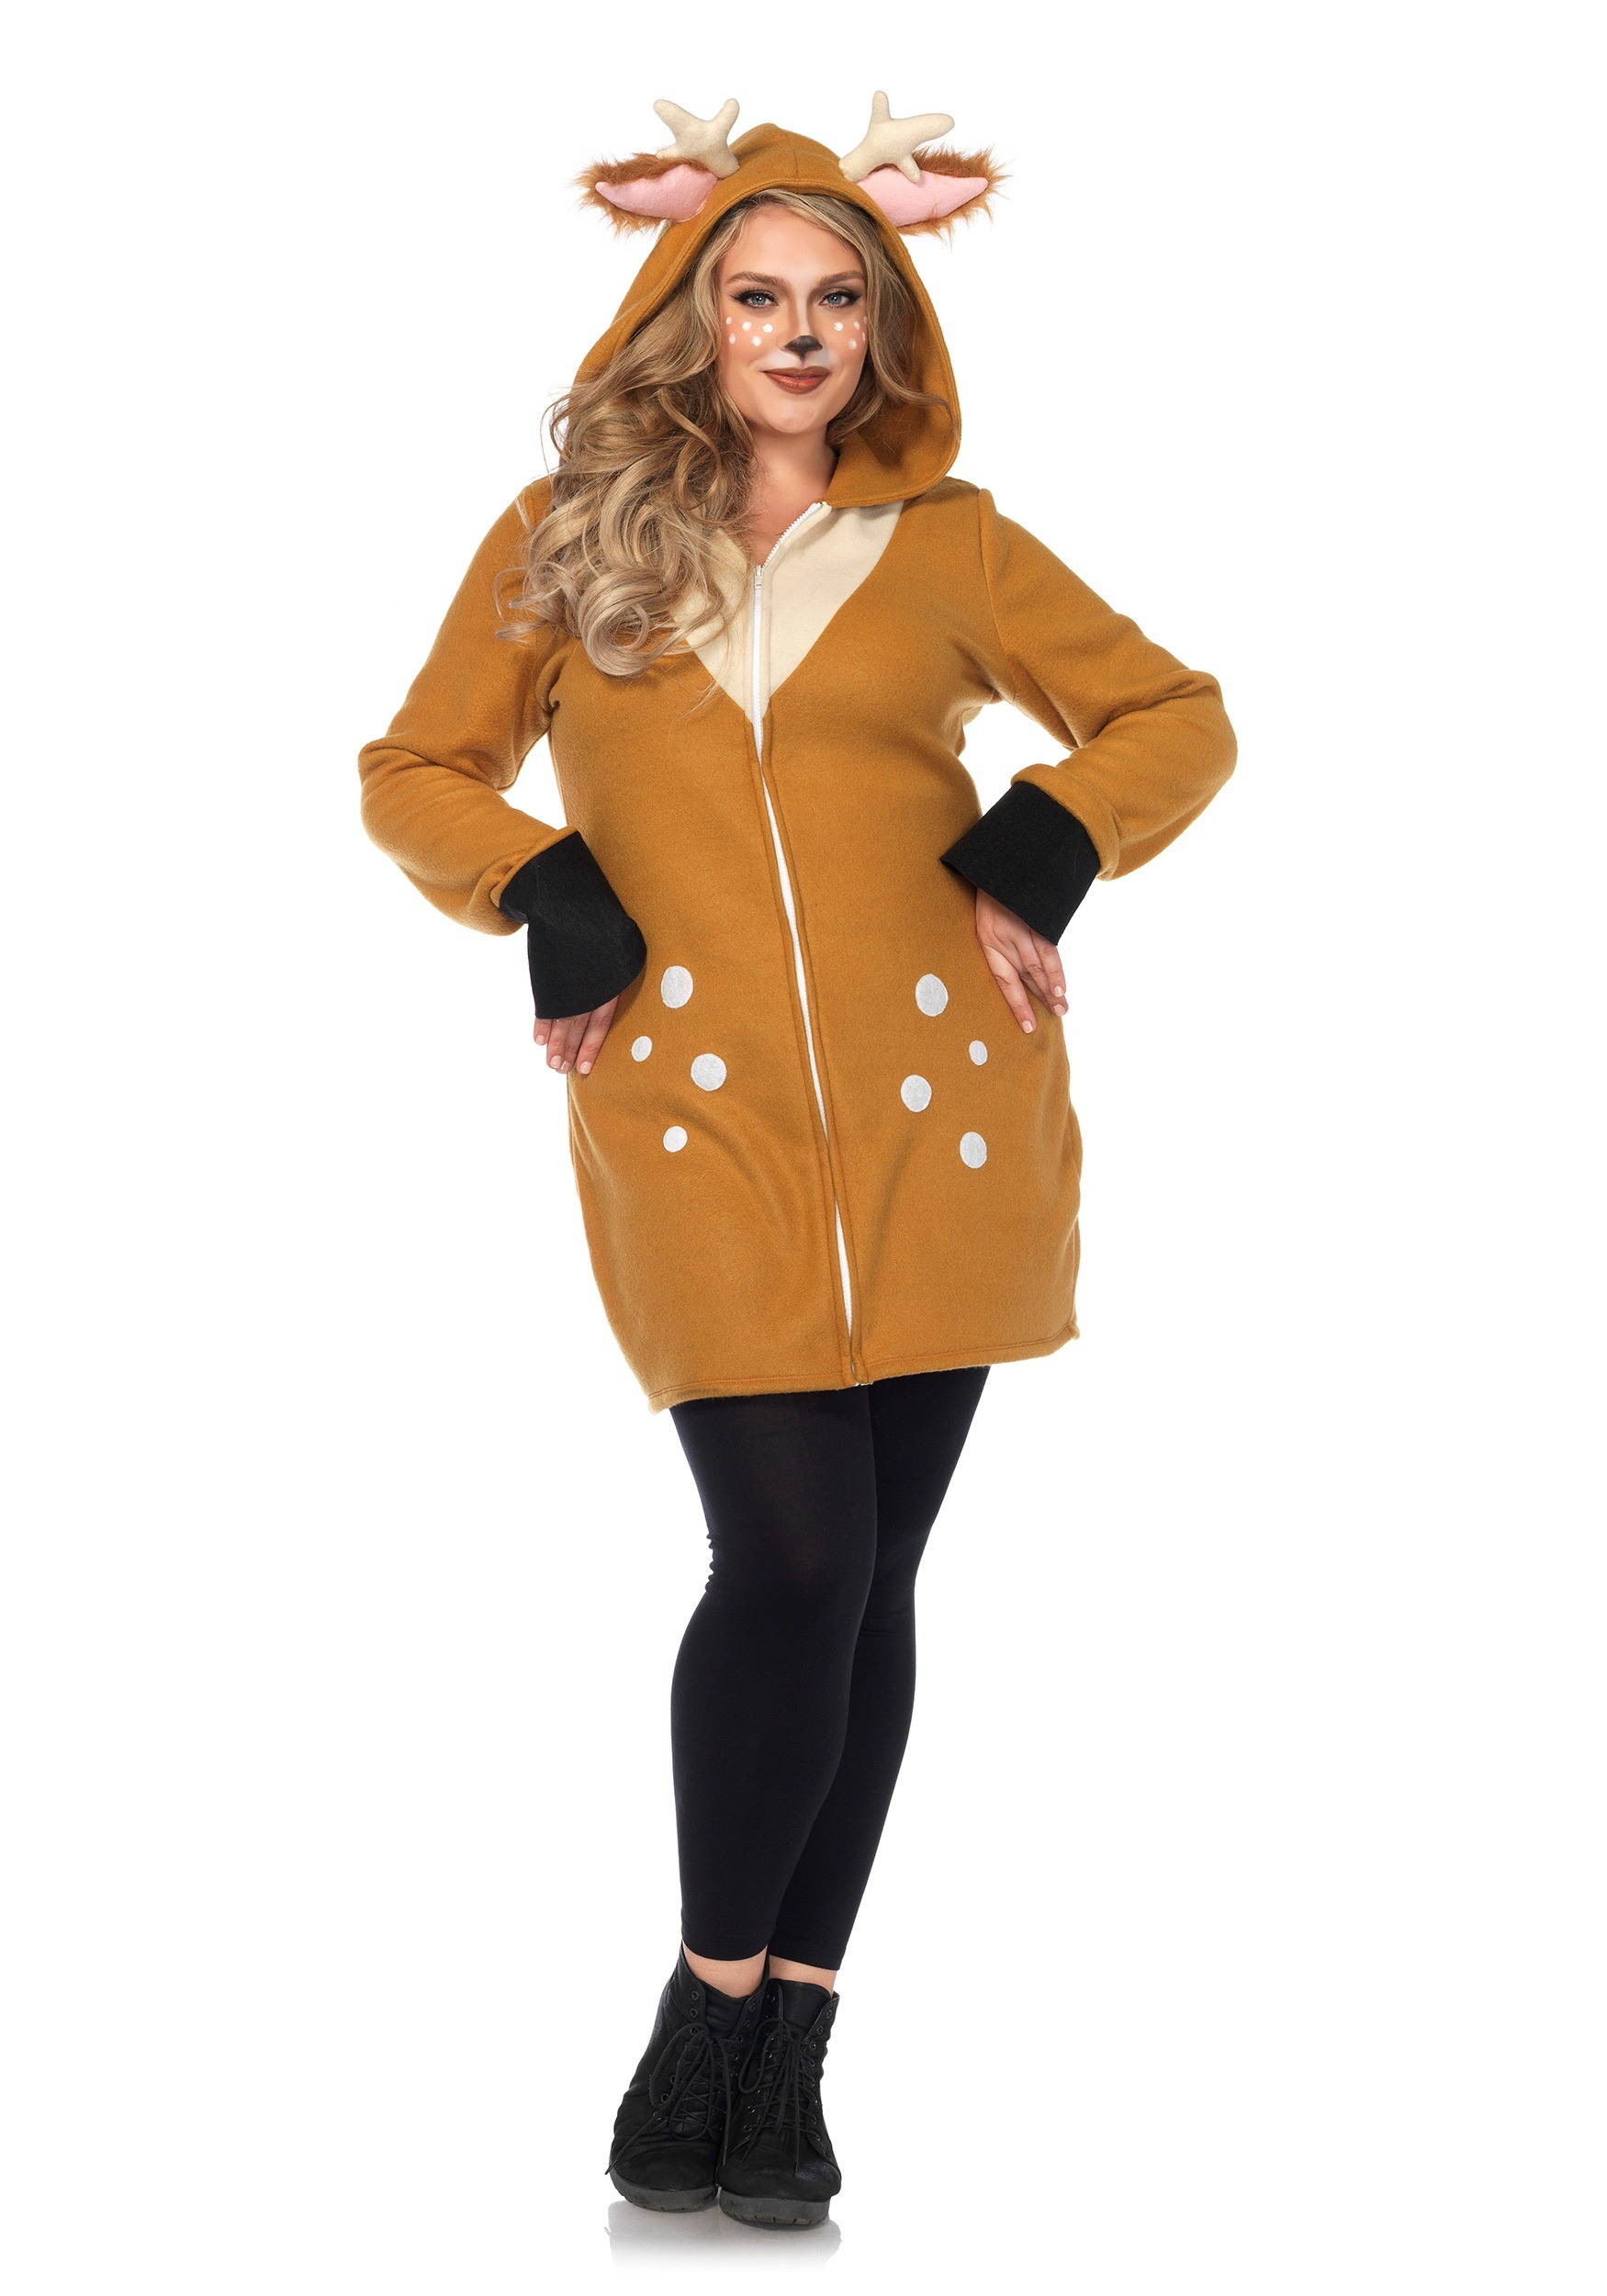 Plus Size Women s Costumes Plus Size Halloween Costumes for Women